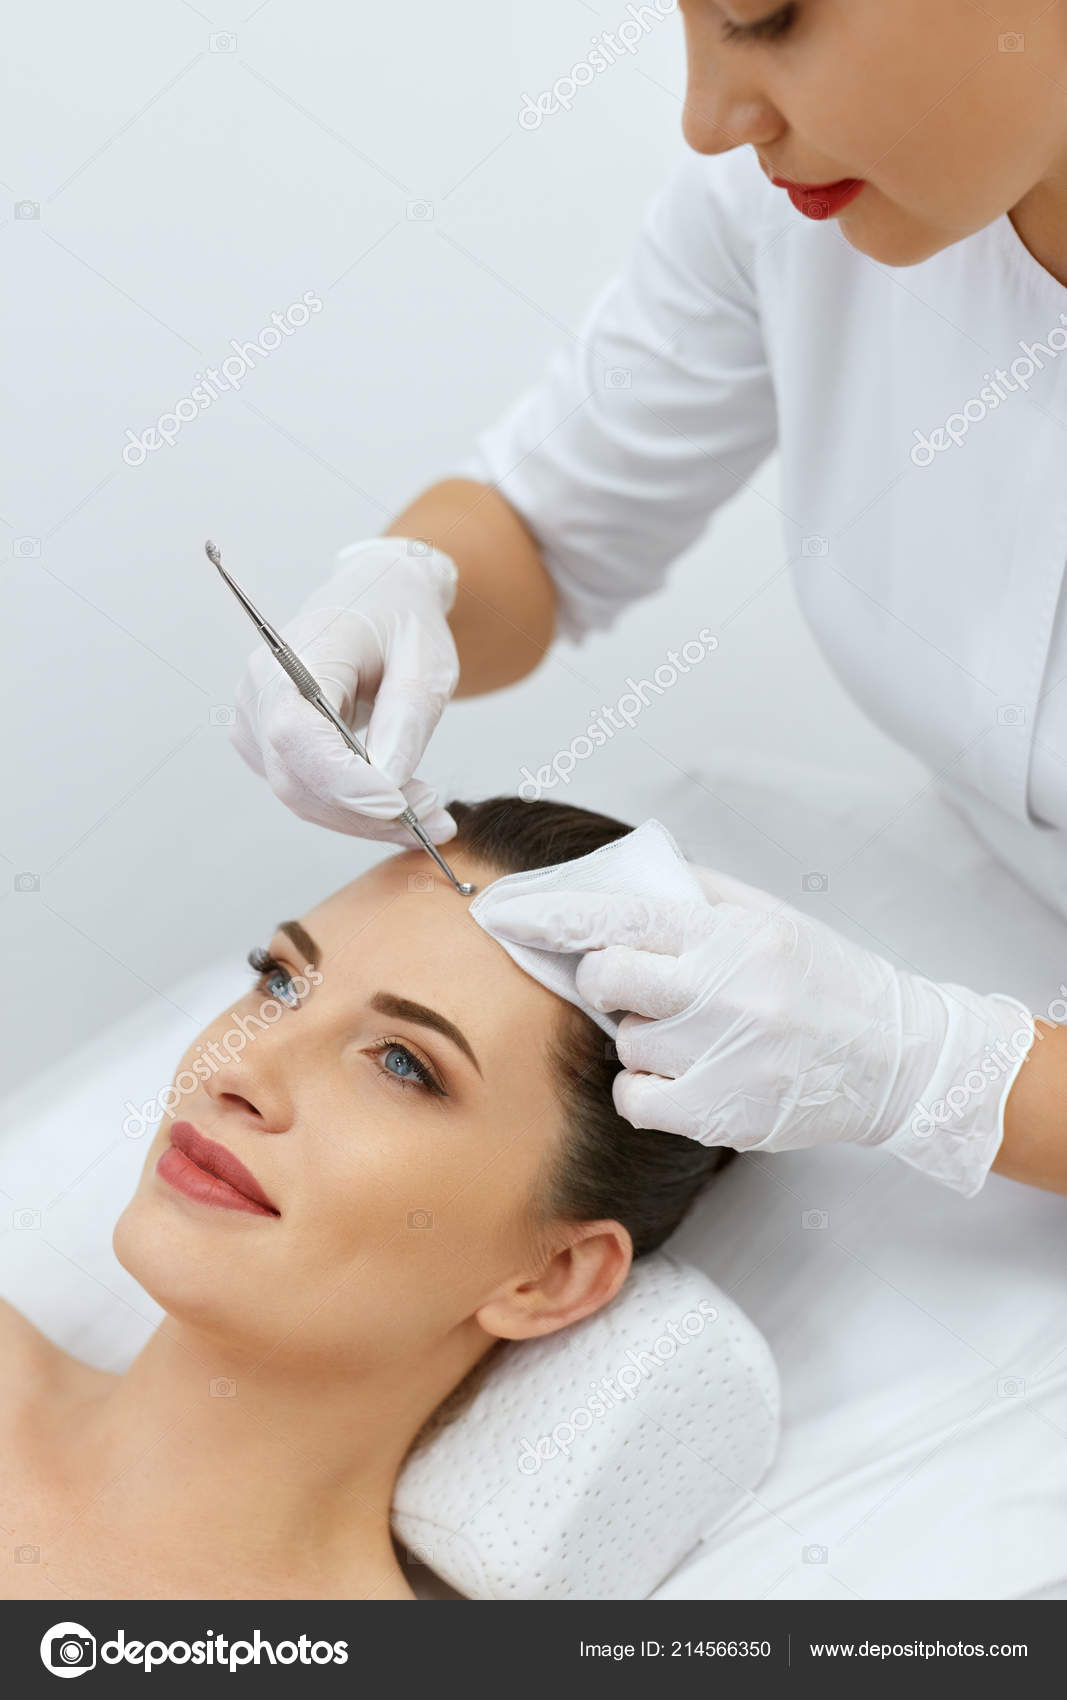 Mechanical cleansing of the face: what it is, description of the procedure, contraindications 89